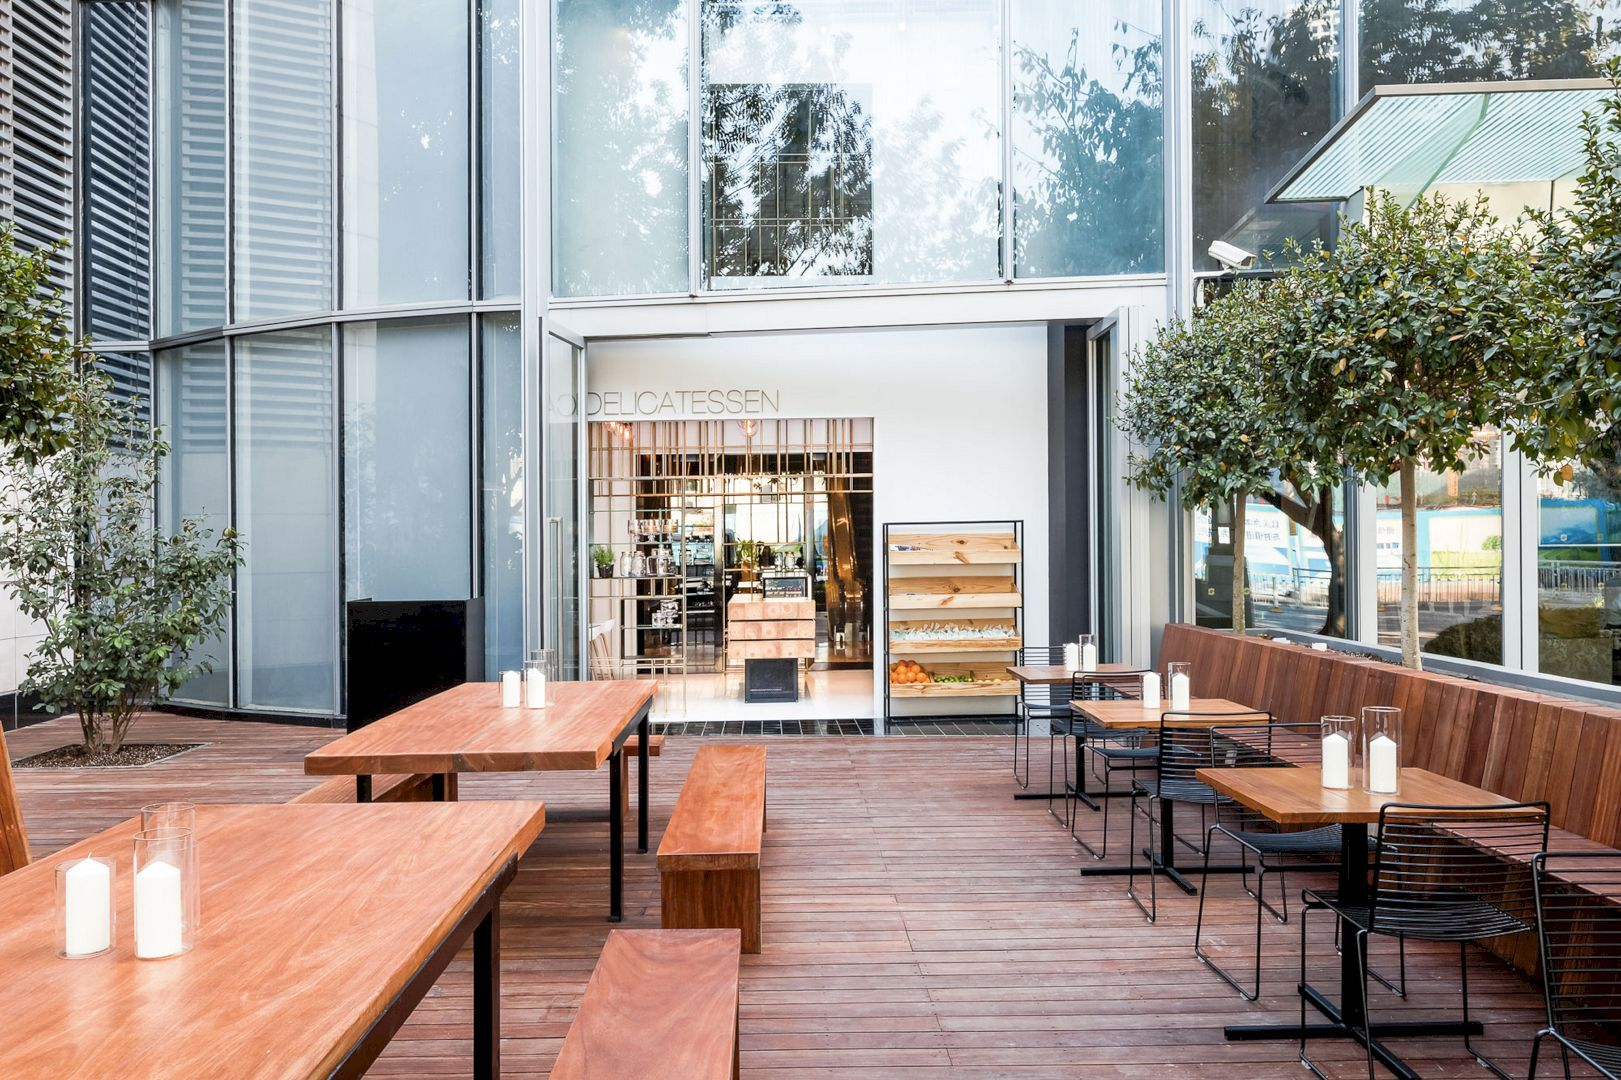 Deli, Shangri-La Futian: A Delicatessen in Shenzhen, China | Shangri on house inside a china, homes in china, small apartment designs in china,